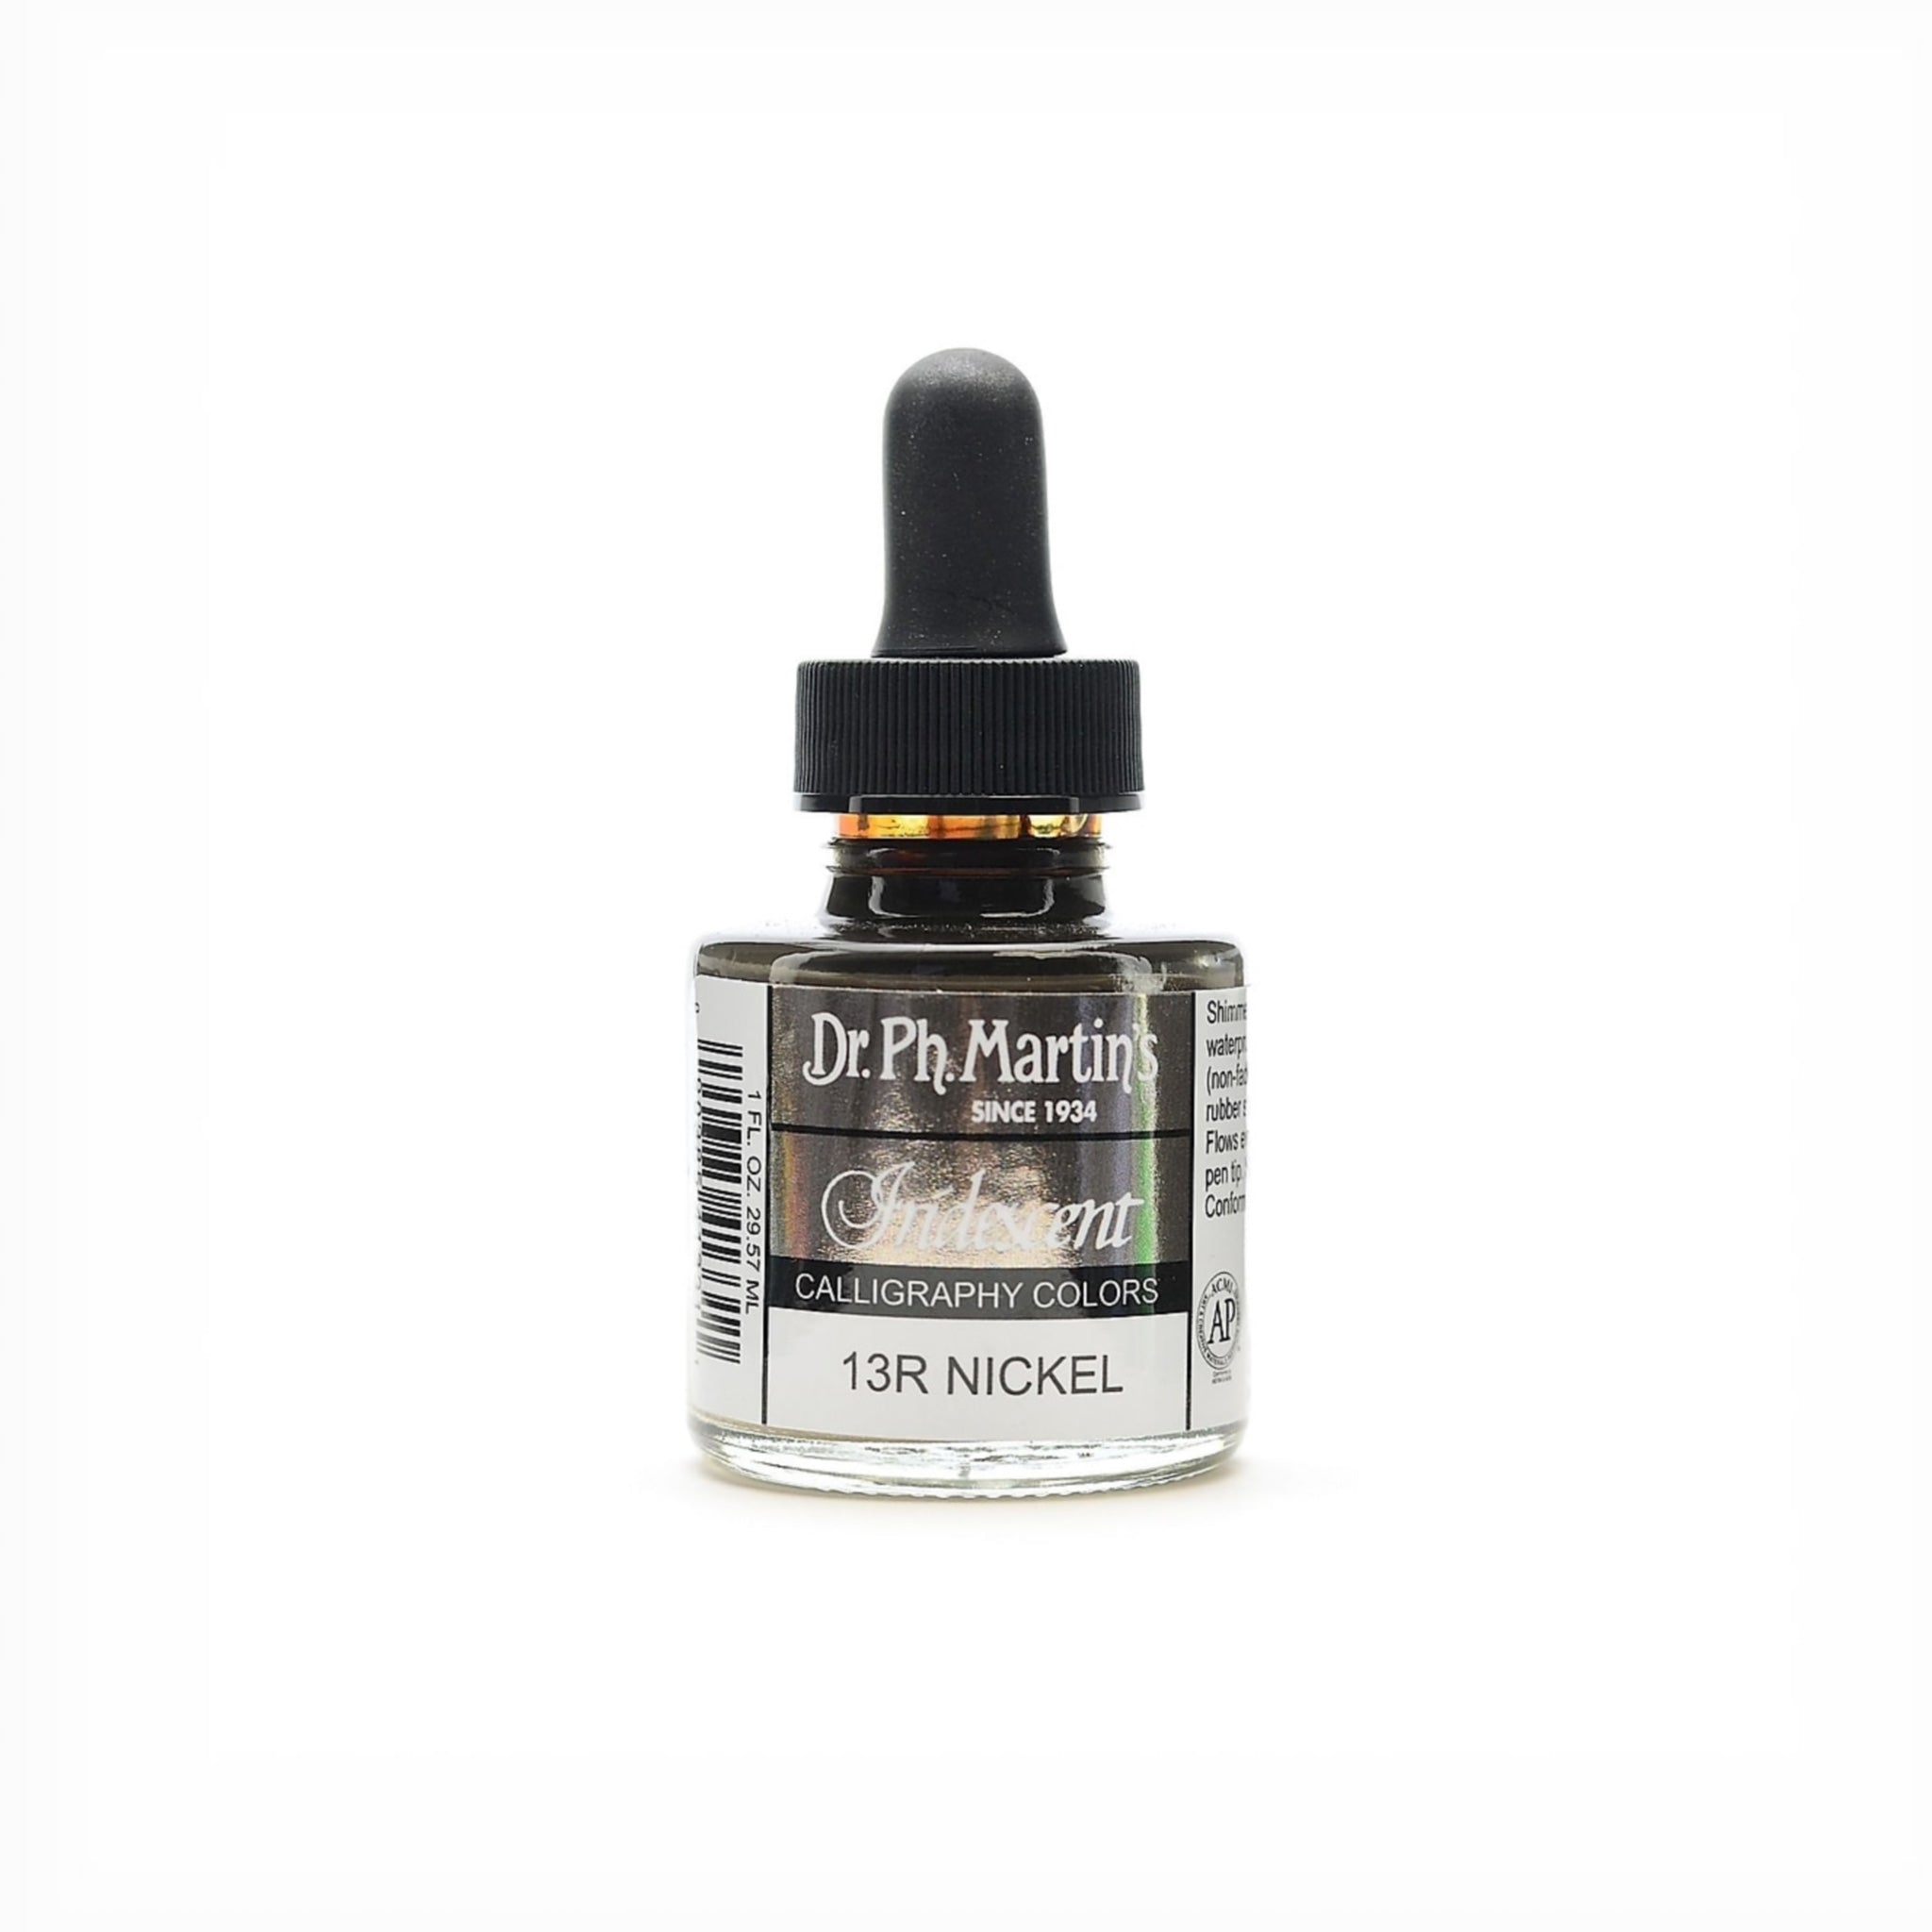 Dr. Ph. Martin's Iridescent Calligraphy Colors - Nickel by Dr. Ph. Martin's - K. A. Artist Shop